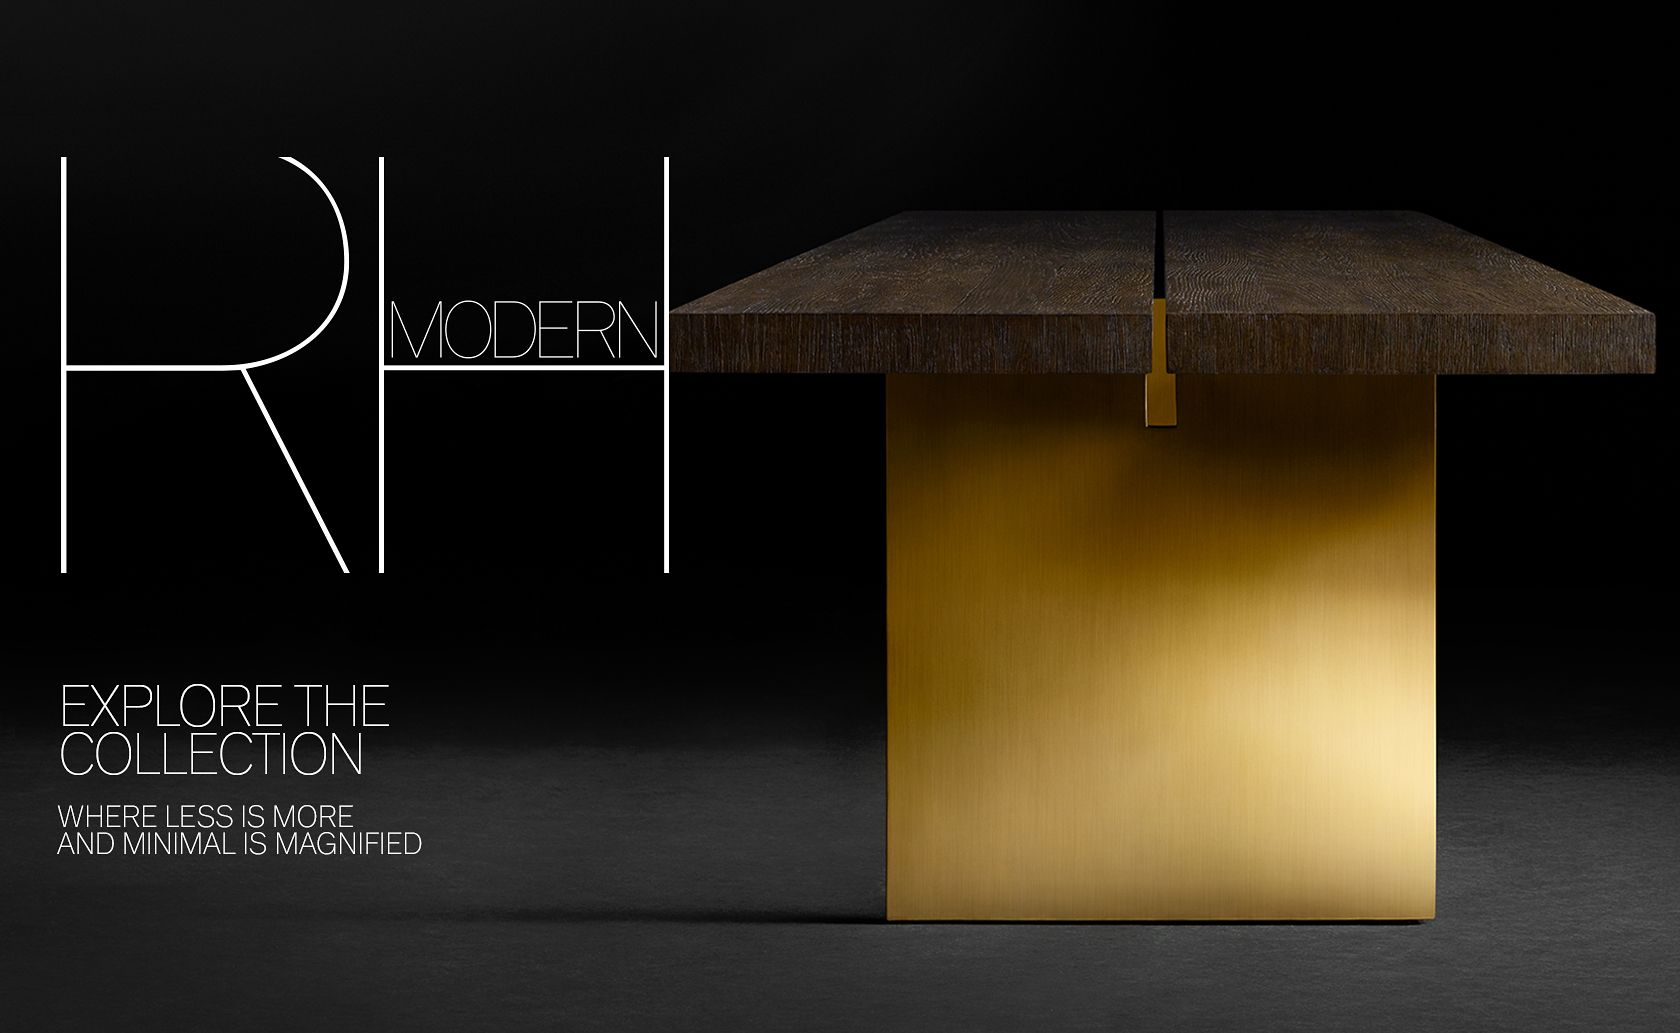 Introducing the 2017 RH Modern Collection. Where Less is More and Minimal is Magnified.